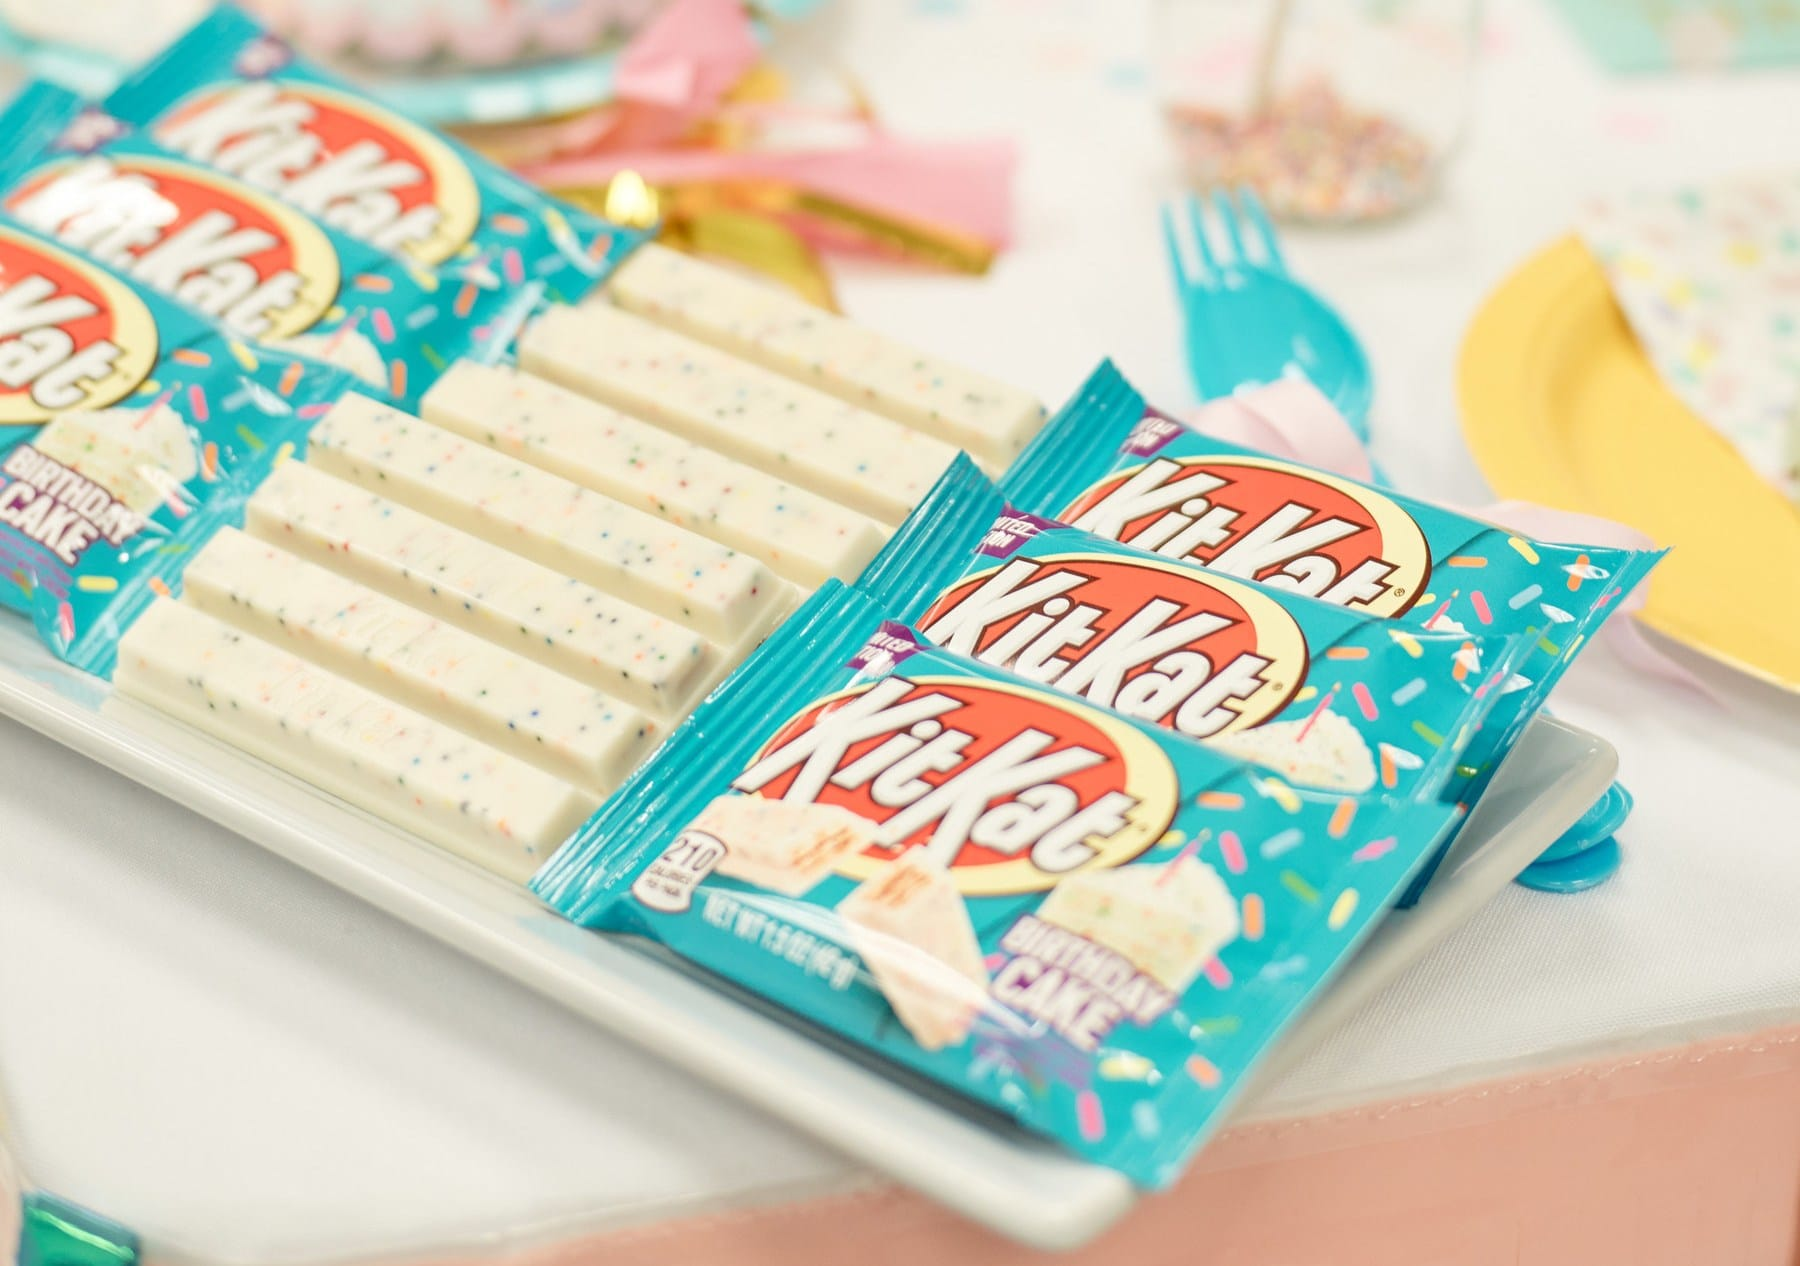 Birthday cake-flavored Kit Kats are hitting the shelves this April 17